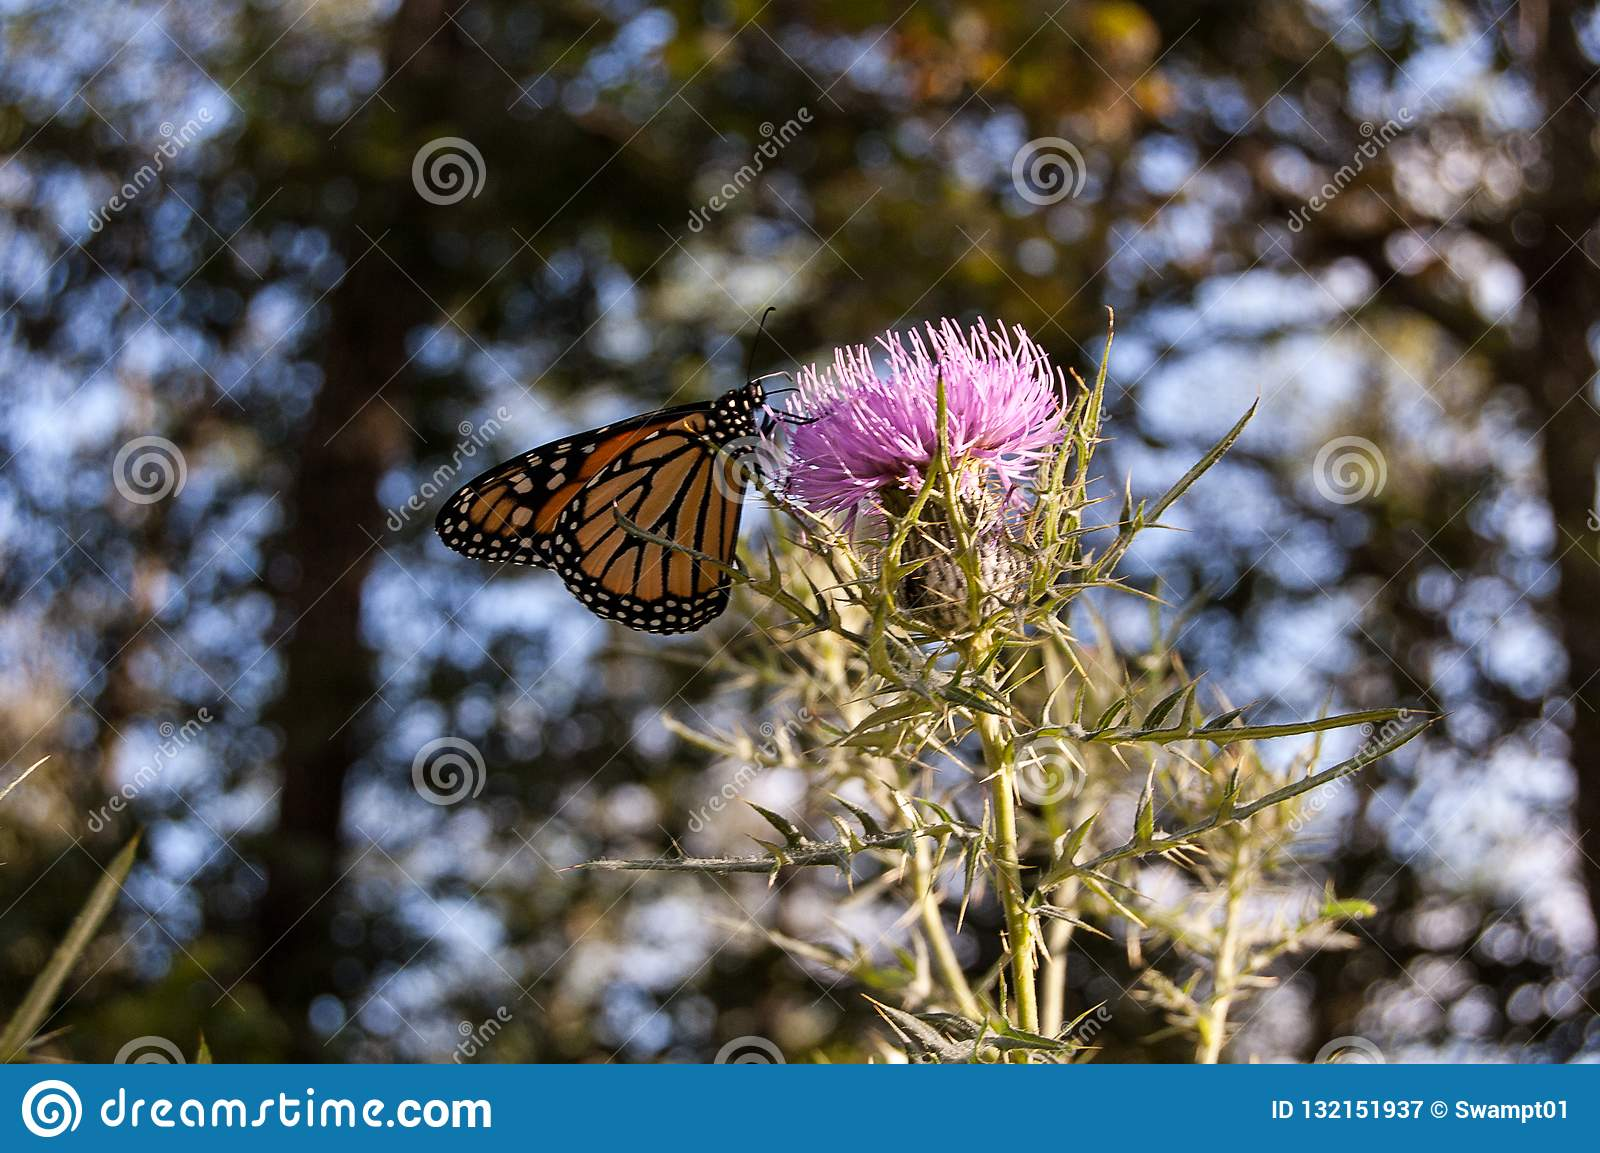 Monarch Butterfly in the Blue Ridge Mountains